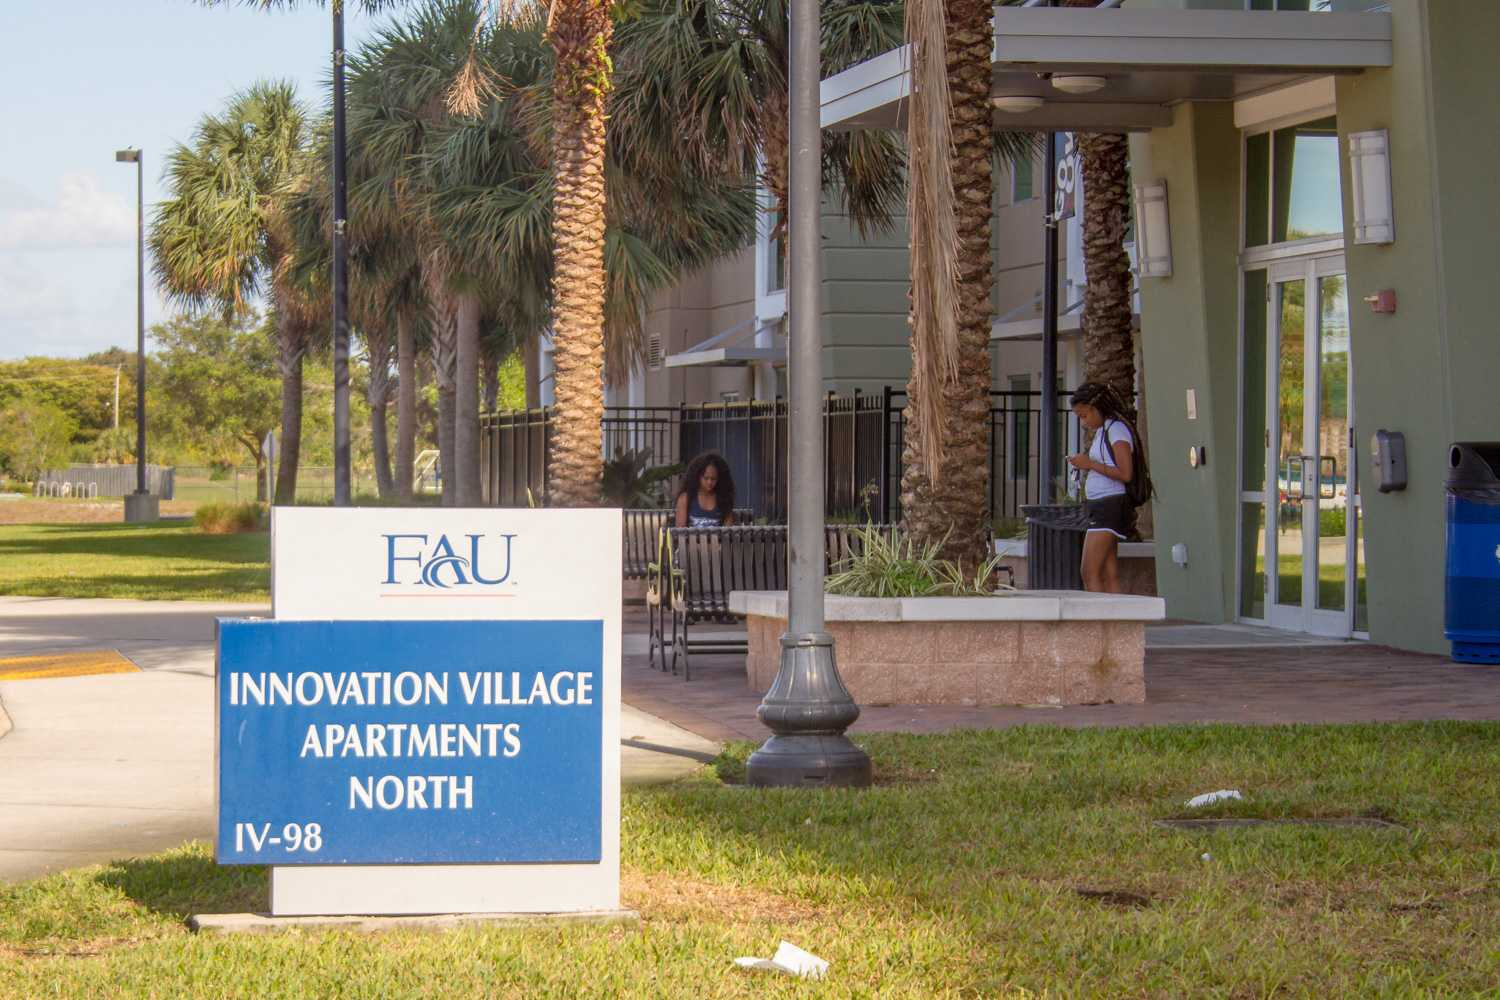 IVAN's North entrance will be closed during the FAU Gala Saturday due to a fireworks show in the parking lot next to the building. Ryan Lynch | Editor in Chief